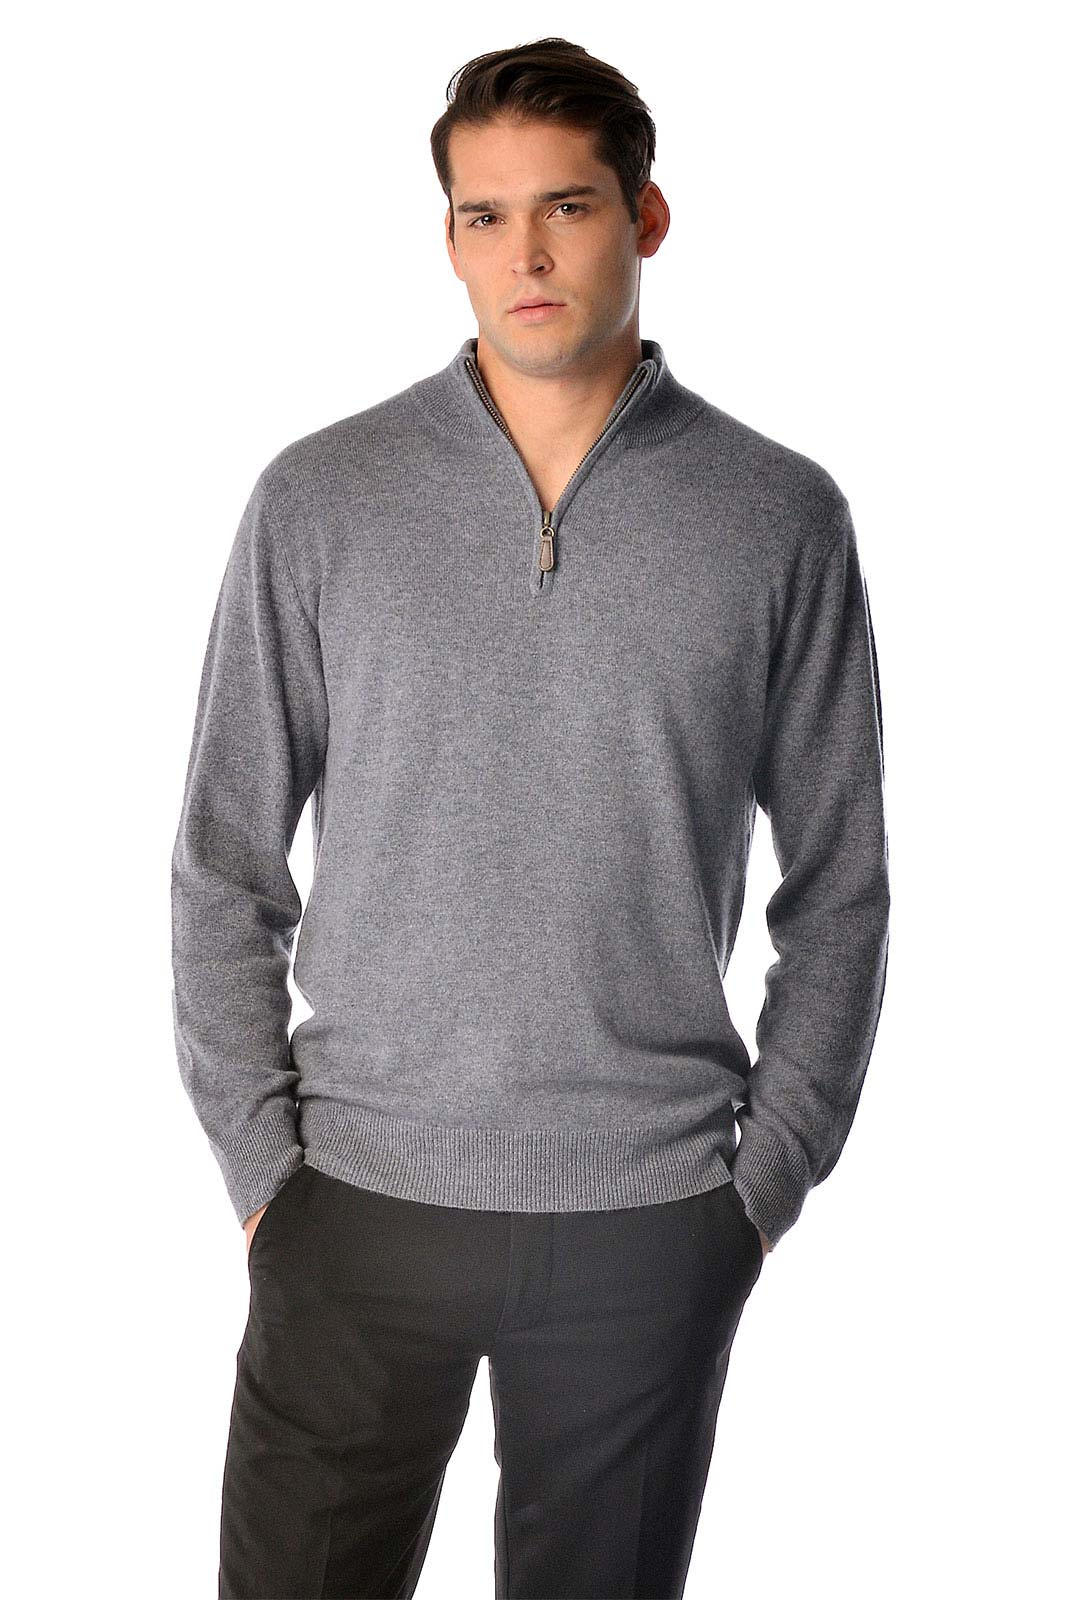 This is a pure cashmere half zip sweater for men. Luxurious soft and really warm our sweaters are made from the finest grade of cashmere. These sweaters are made from A-Grade 3 ply pure cashmere yarn and offer unsurpassed warmth and softness.